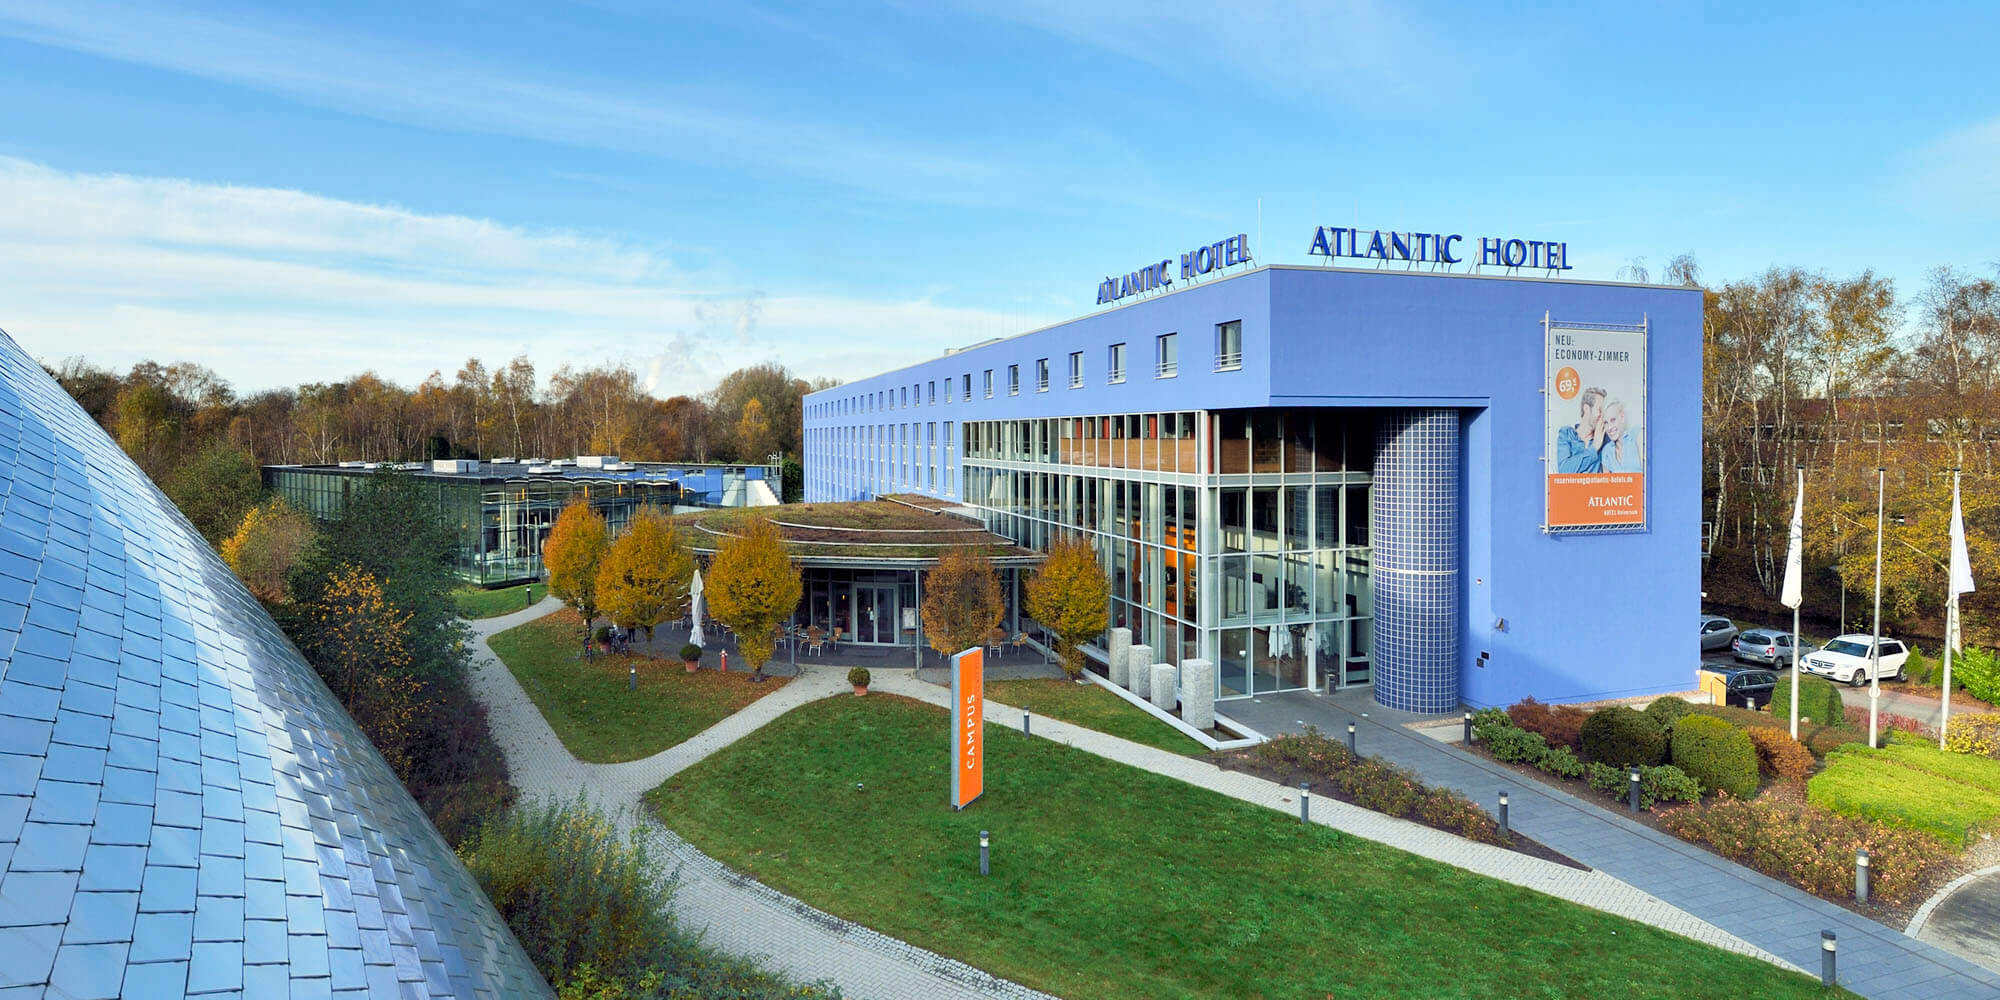 Atlantic Hotel am Universum, Bremen